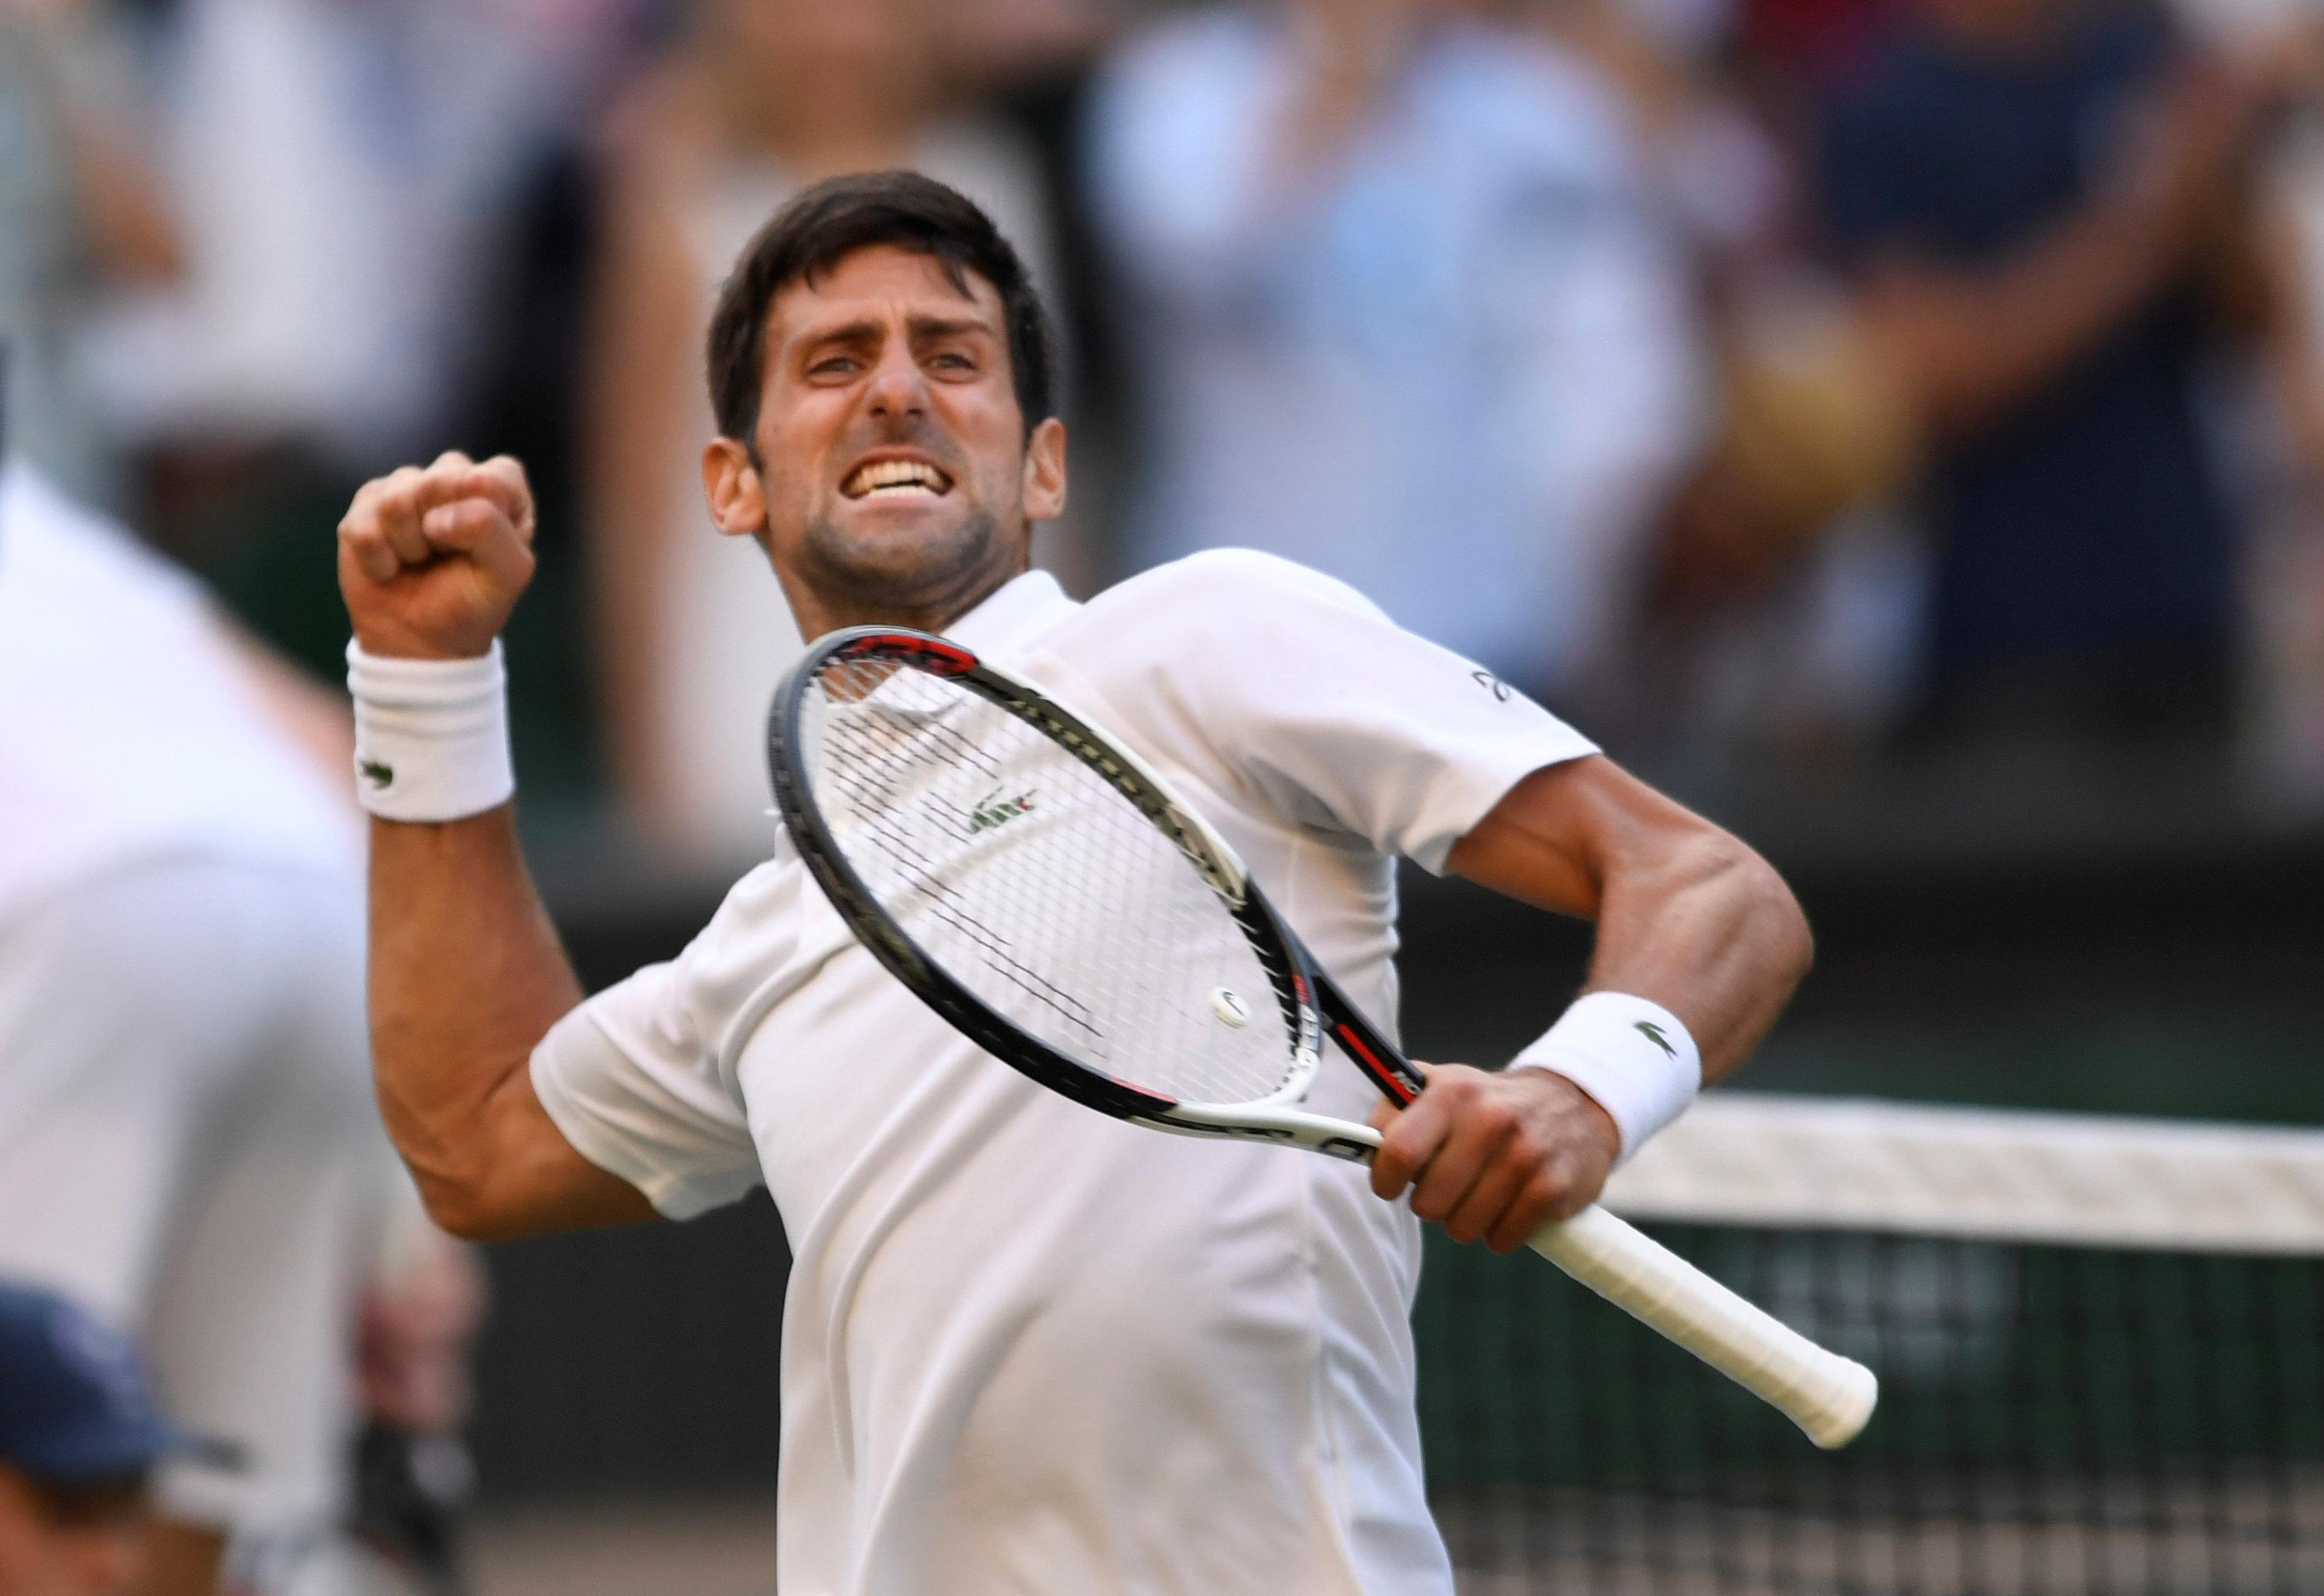 The Novak Djokovic we all know came to party against Kyle Edmund